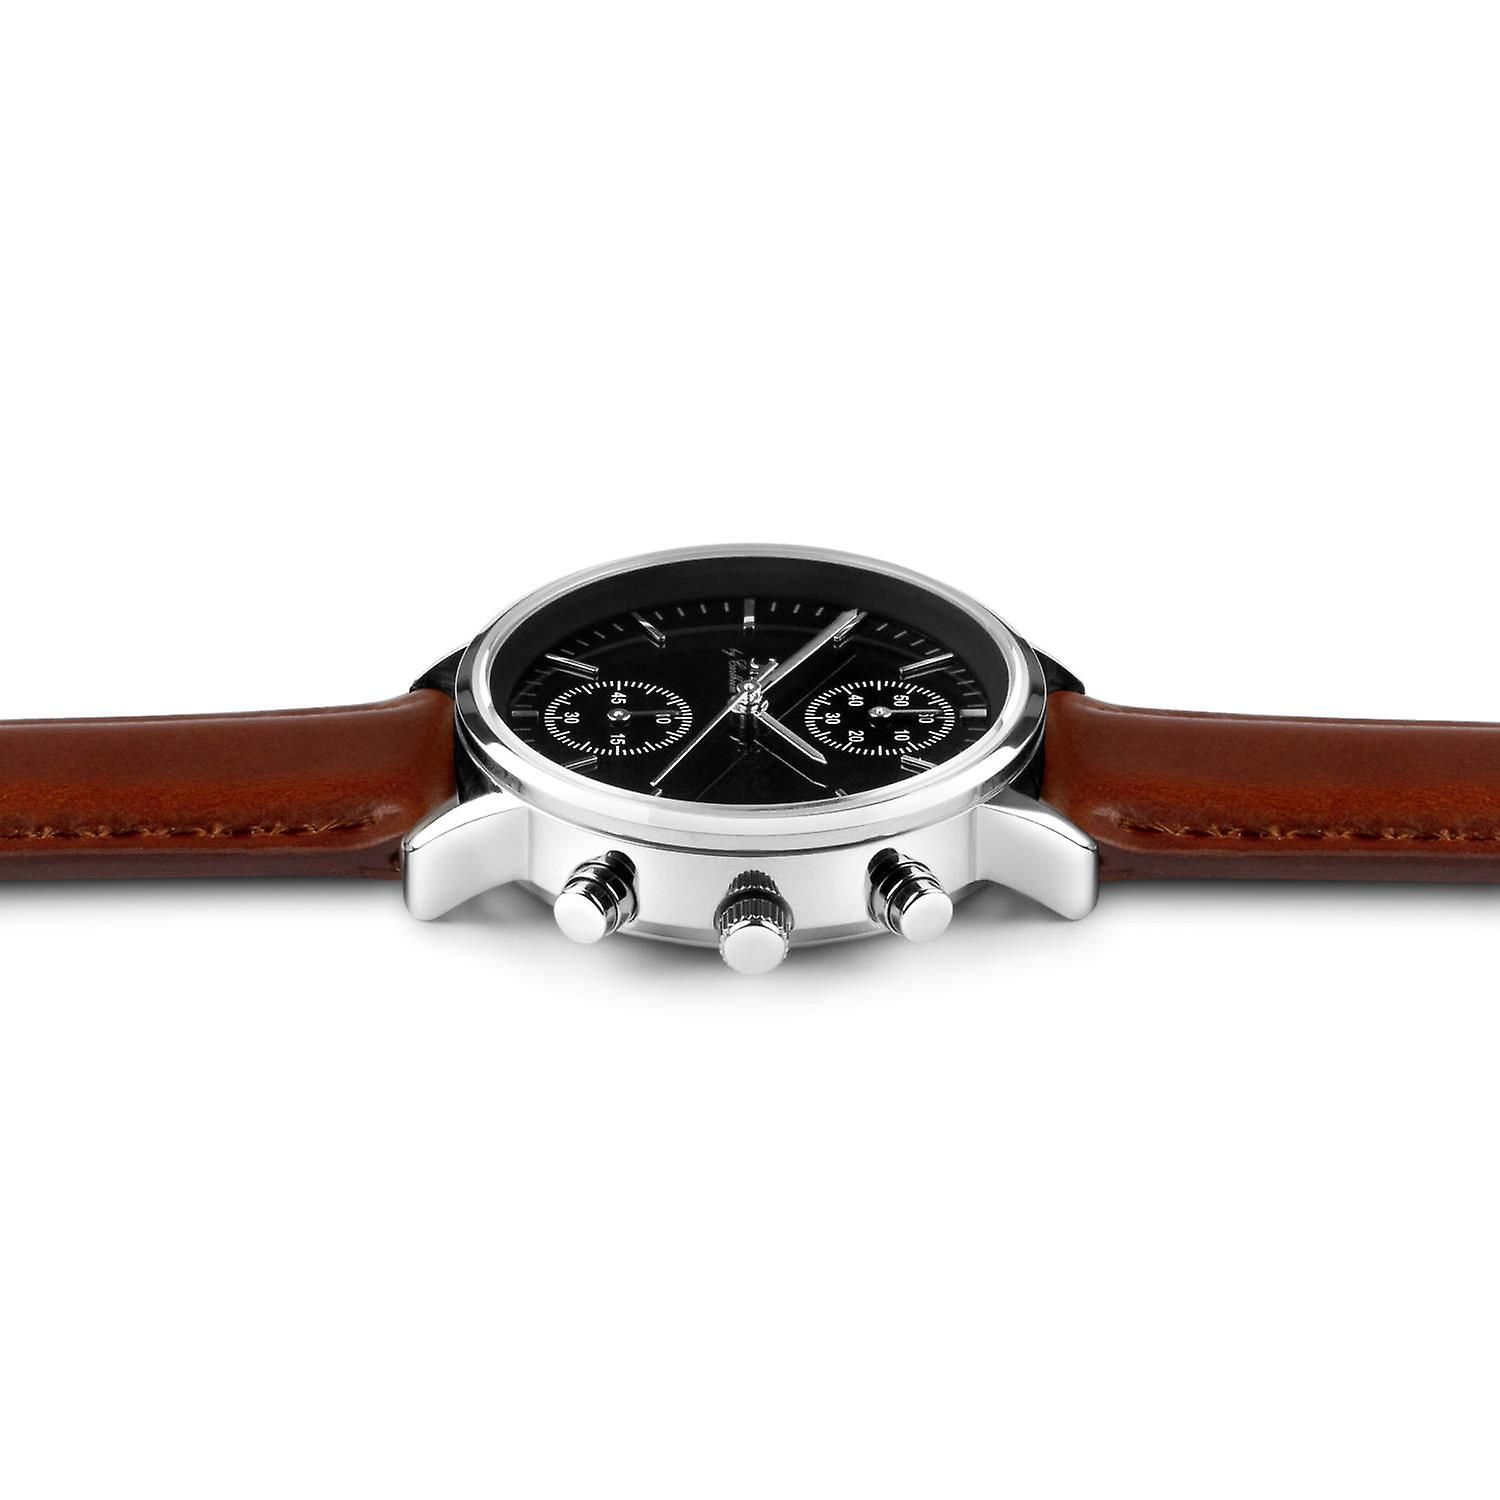 Carlheim | Wristwatches | Chronograph | New Word | Scandinavian design